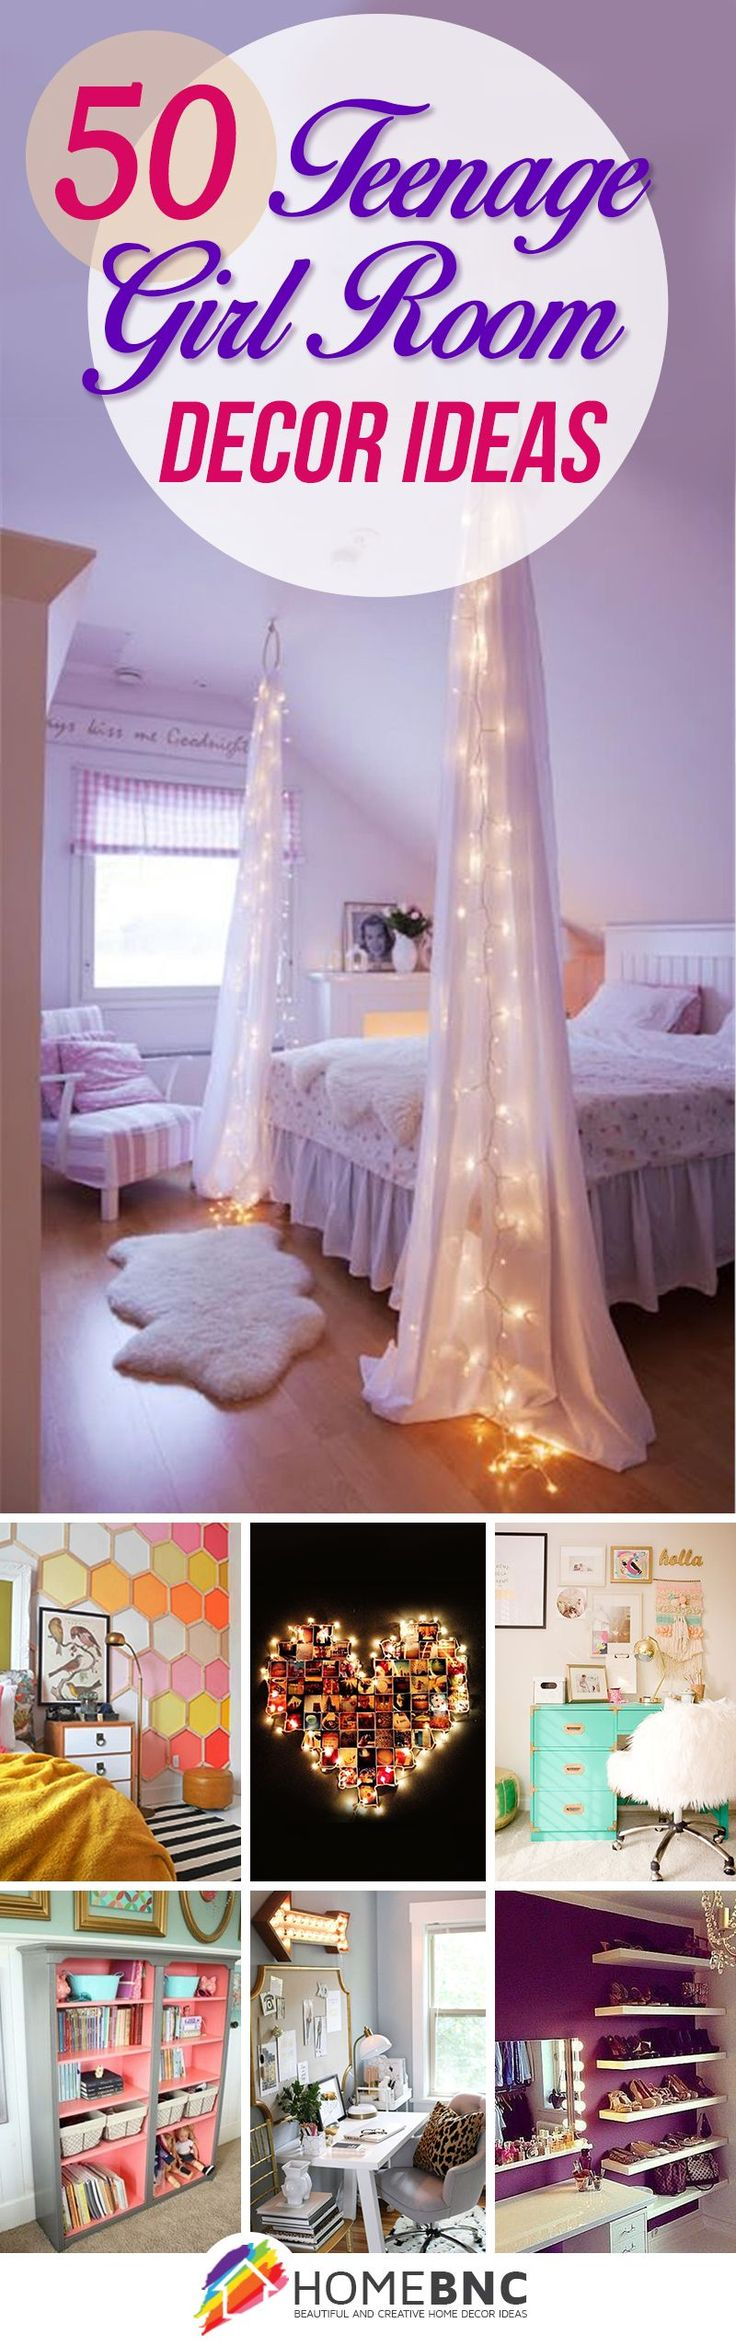 Interior Teen Bedroom Design best 20+ teen bedroom designs ideas on pinterest | teen girl rooms